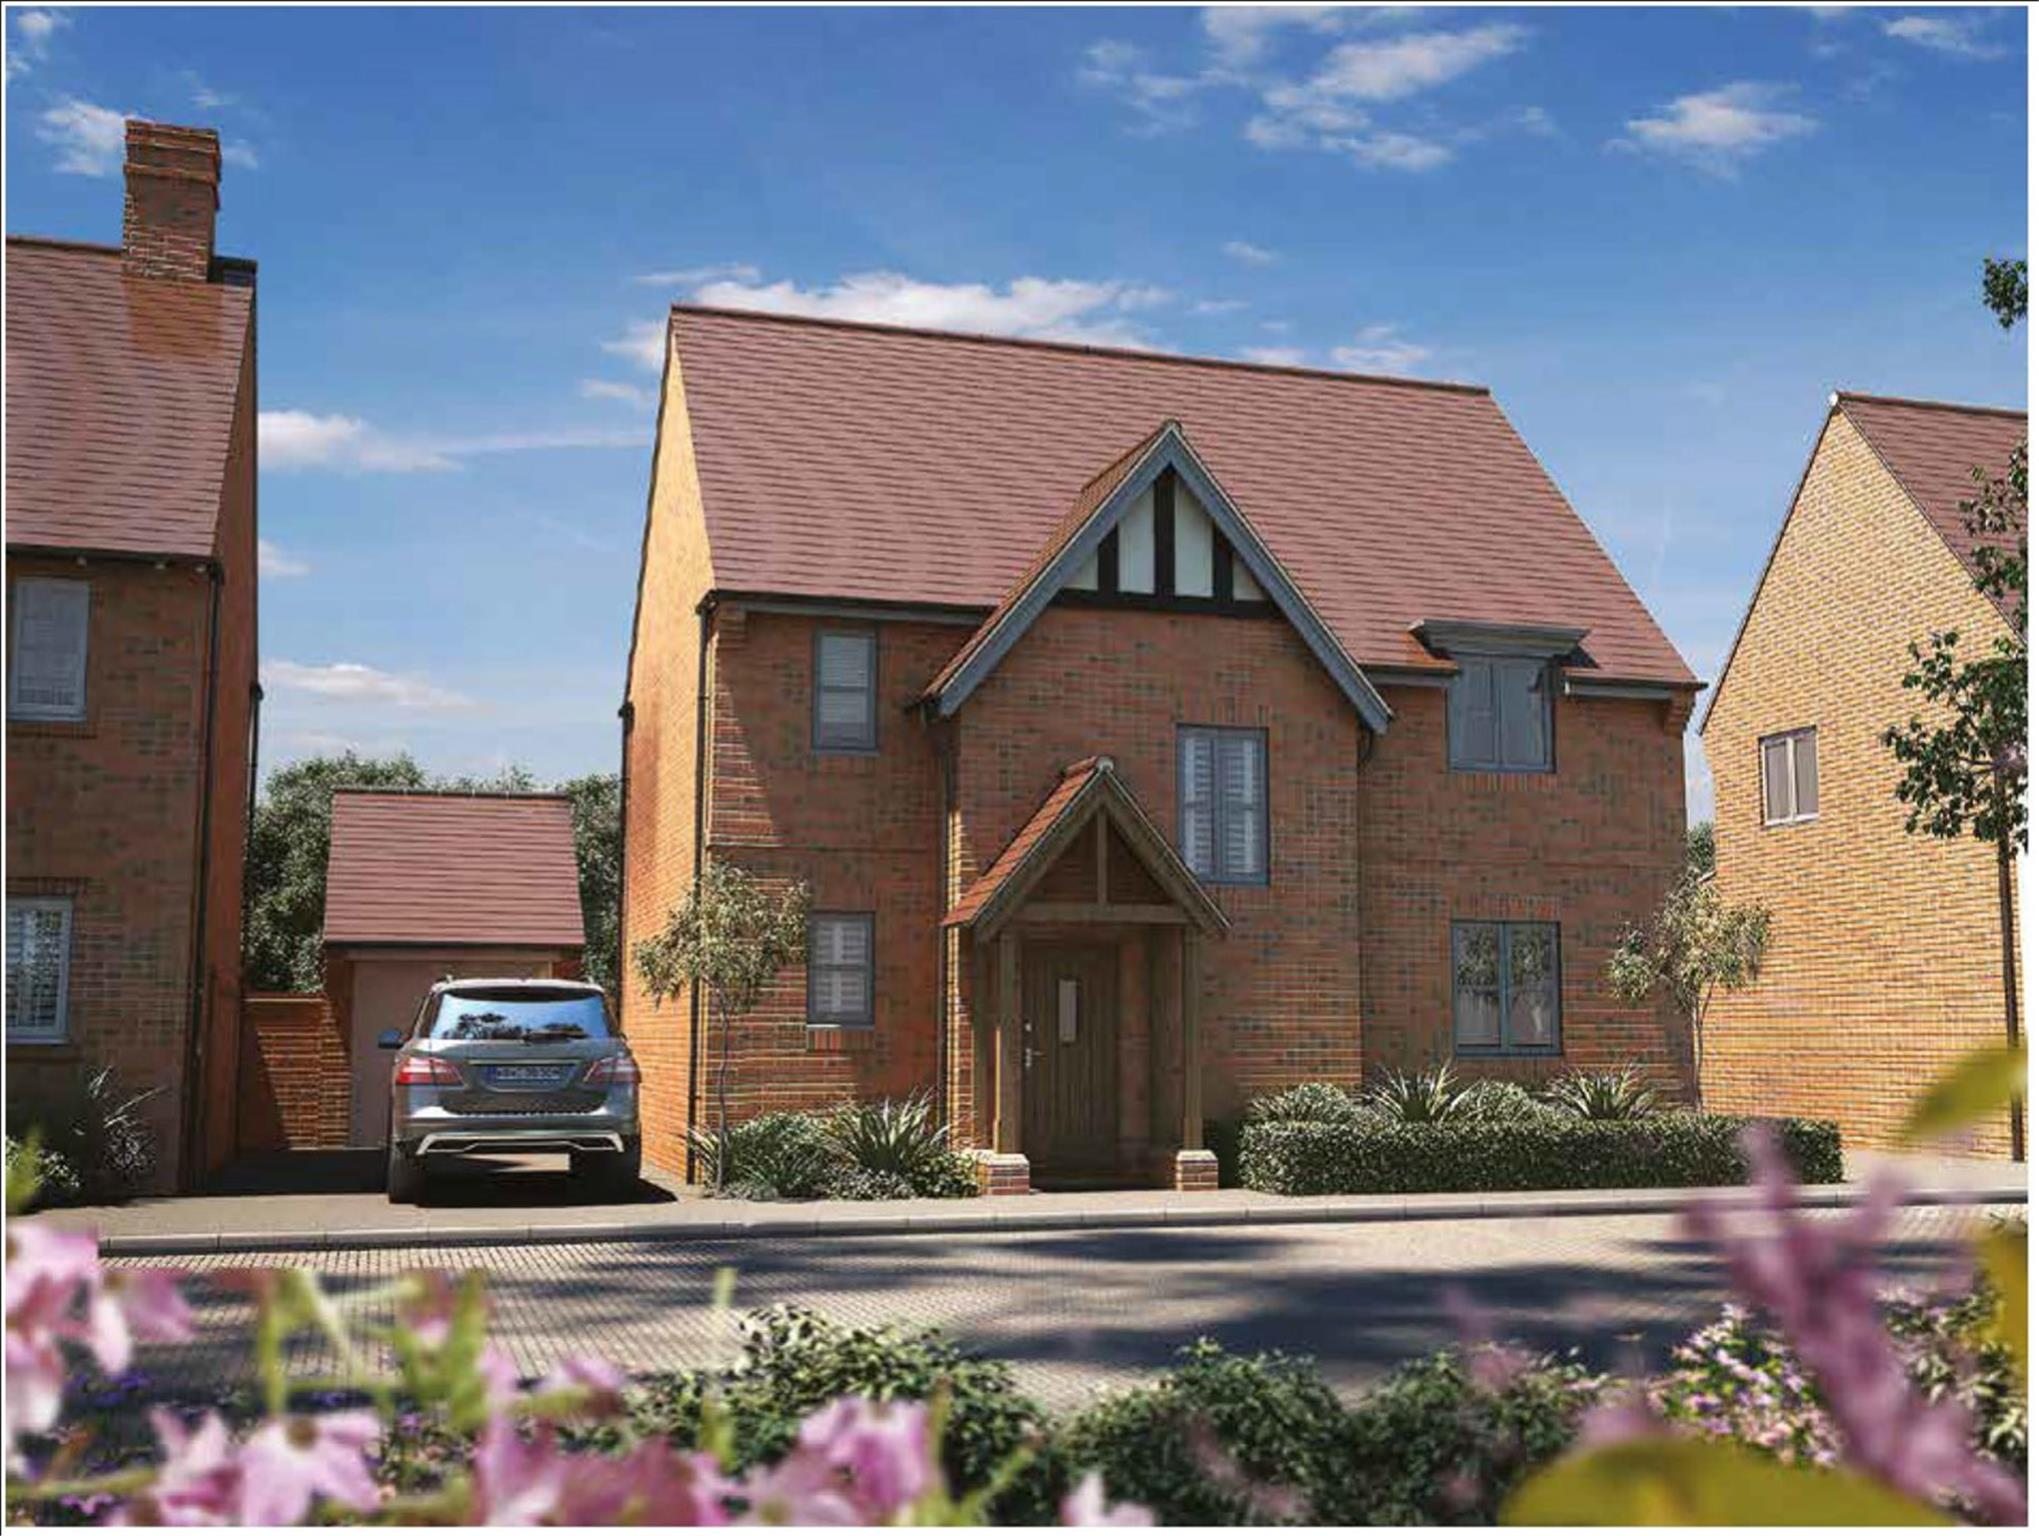 Plot 27, Beech House, Chartist Way, Staunton GL19